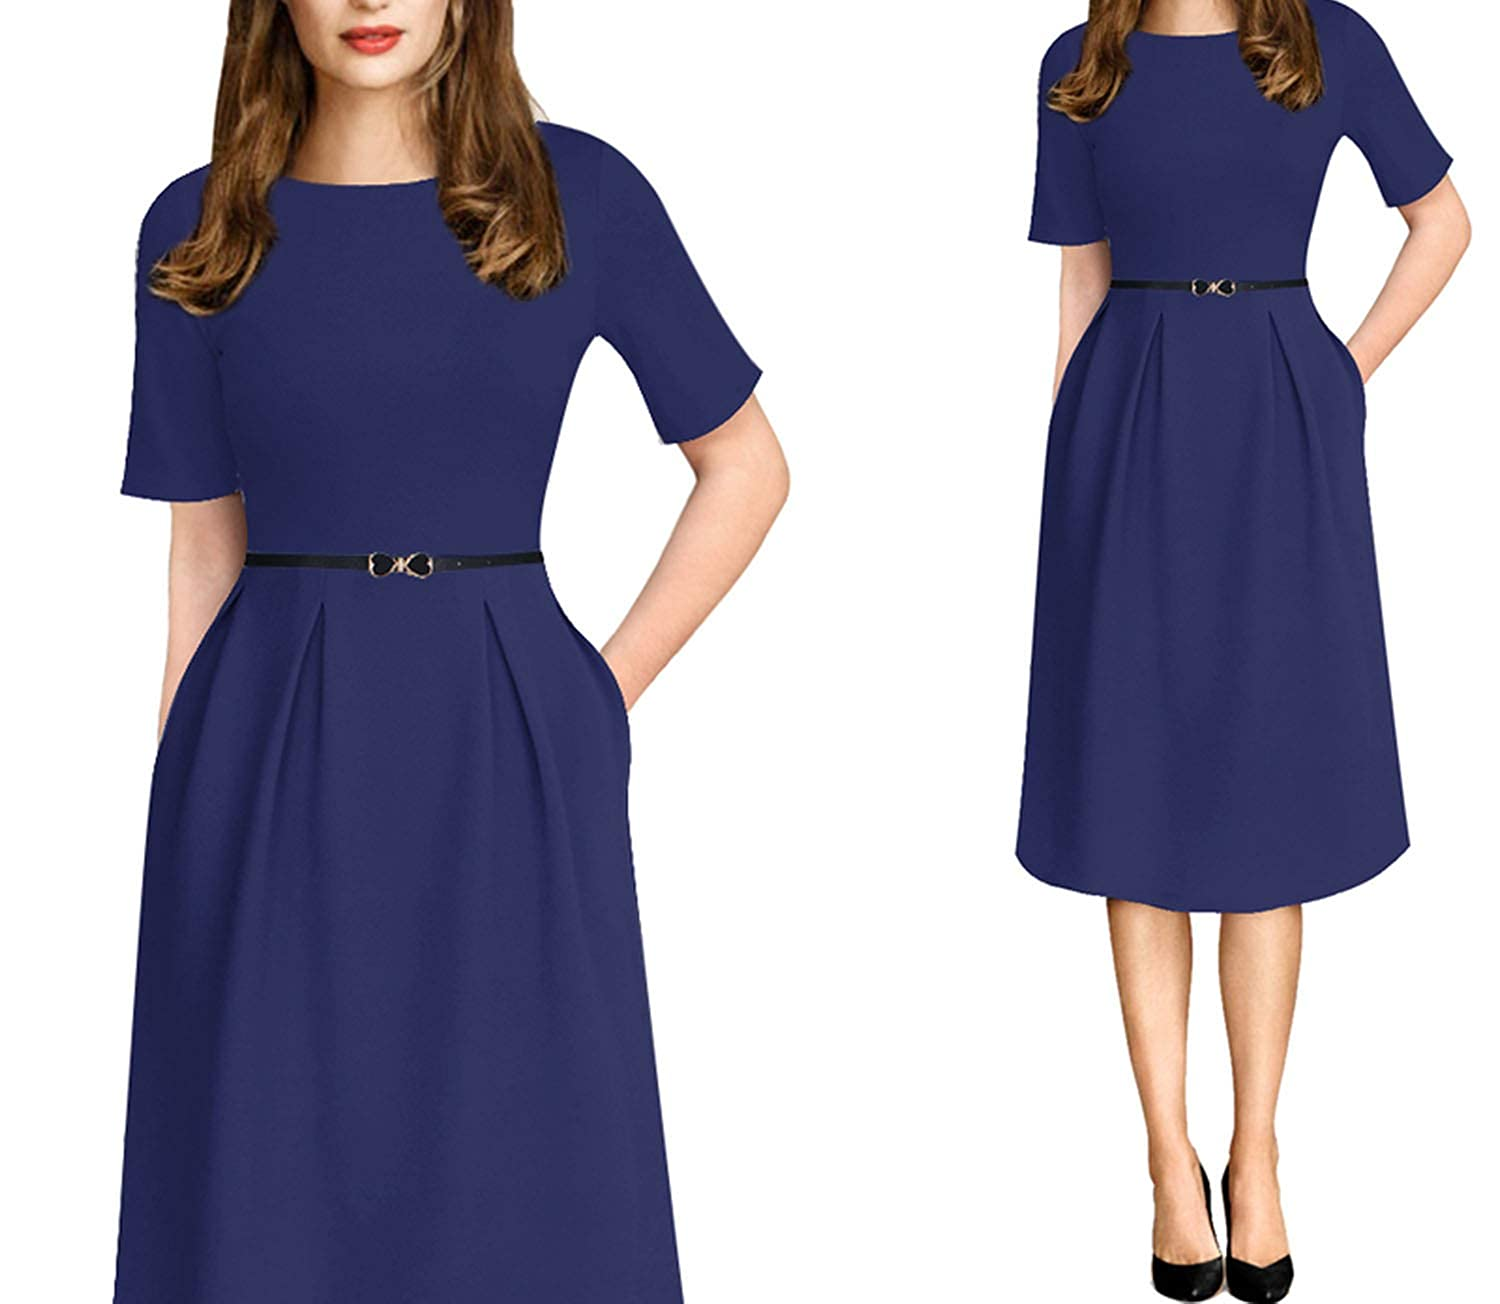 bluee 1 Womens Elegant Vintage Summer Print Belted Patchwork Casual Party A Line Dress